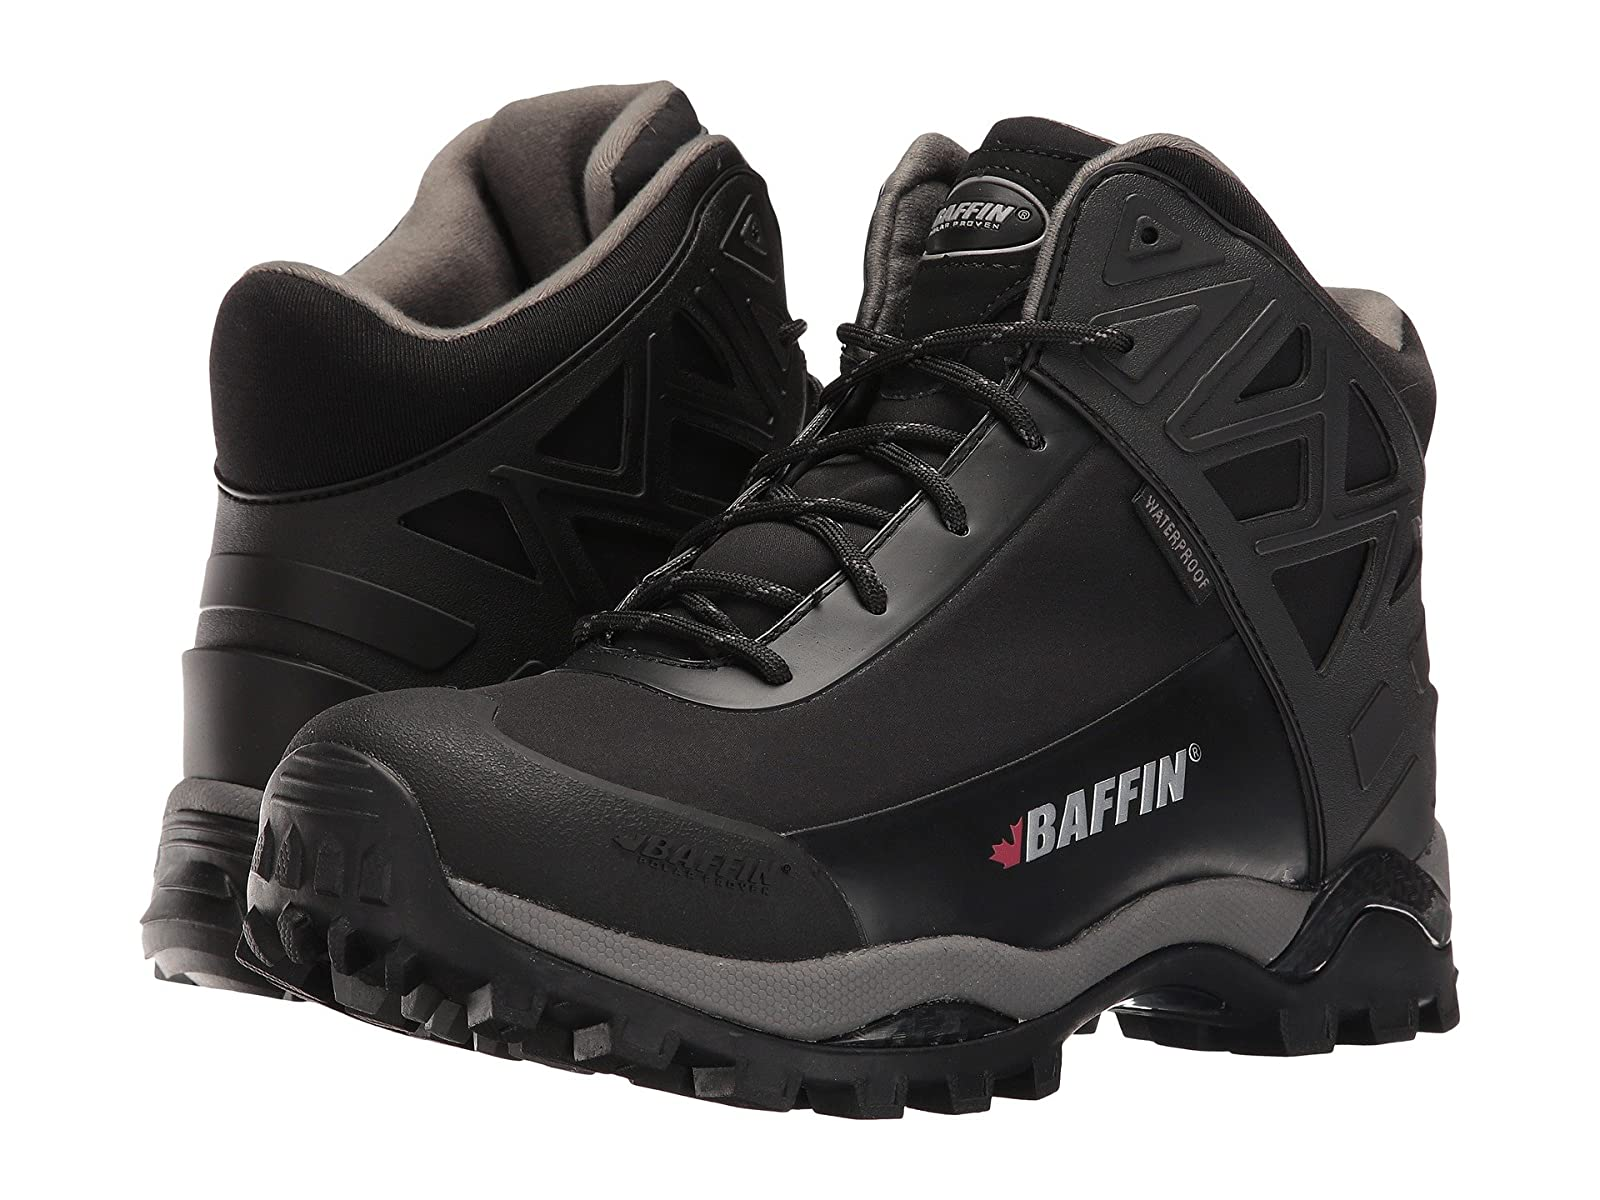 Baffin BlizzardCheap and distinctive eye-catching shoes